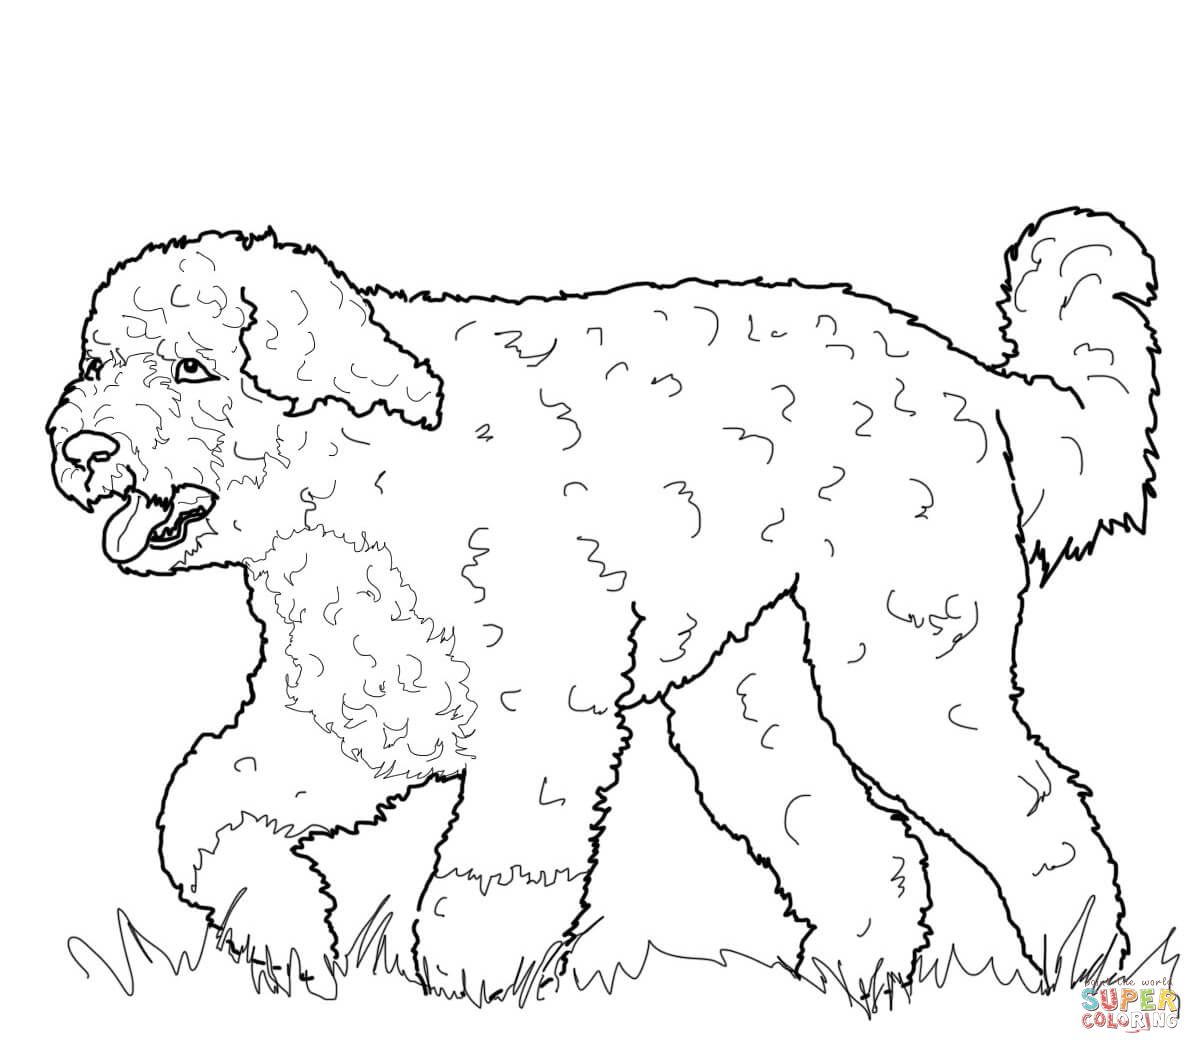 Portuguese Water Dog Dog Coloring Page Dog Coloring Book Coloring Pages [ 1054 x 1200 Pixel ]